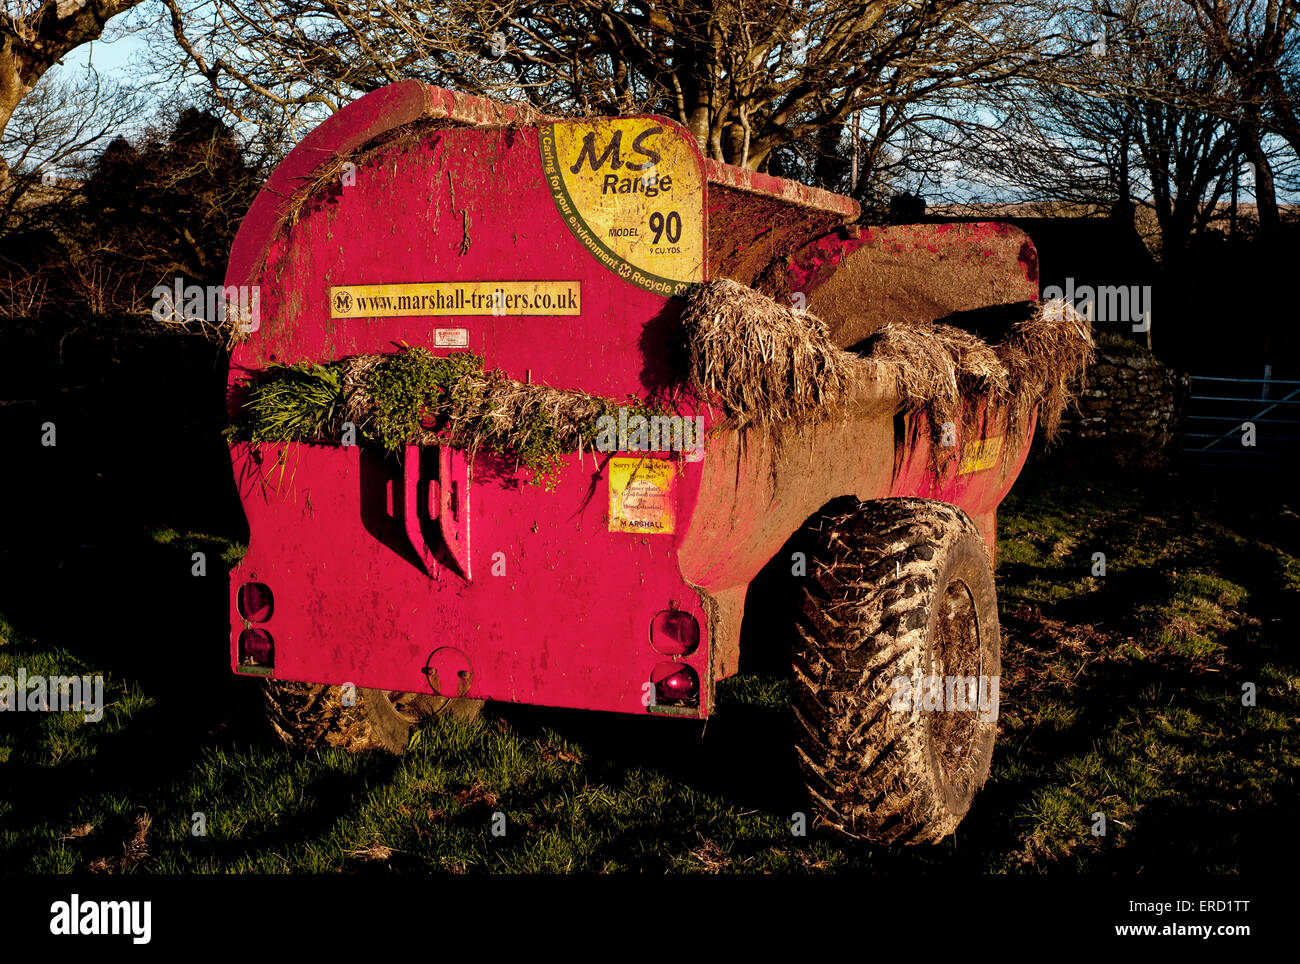 tractor, manure,muck Spreader, silage, farming,  farm, cow, dung, odor, control, cultivated, land, soil, tank, - Stock Image